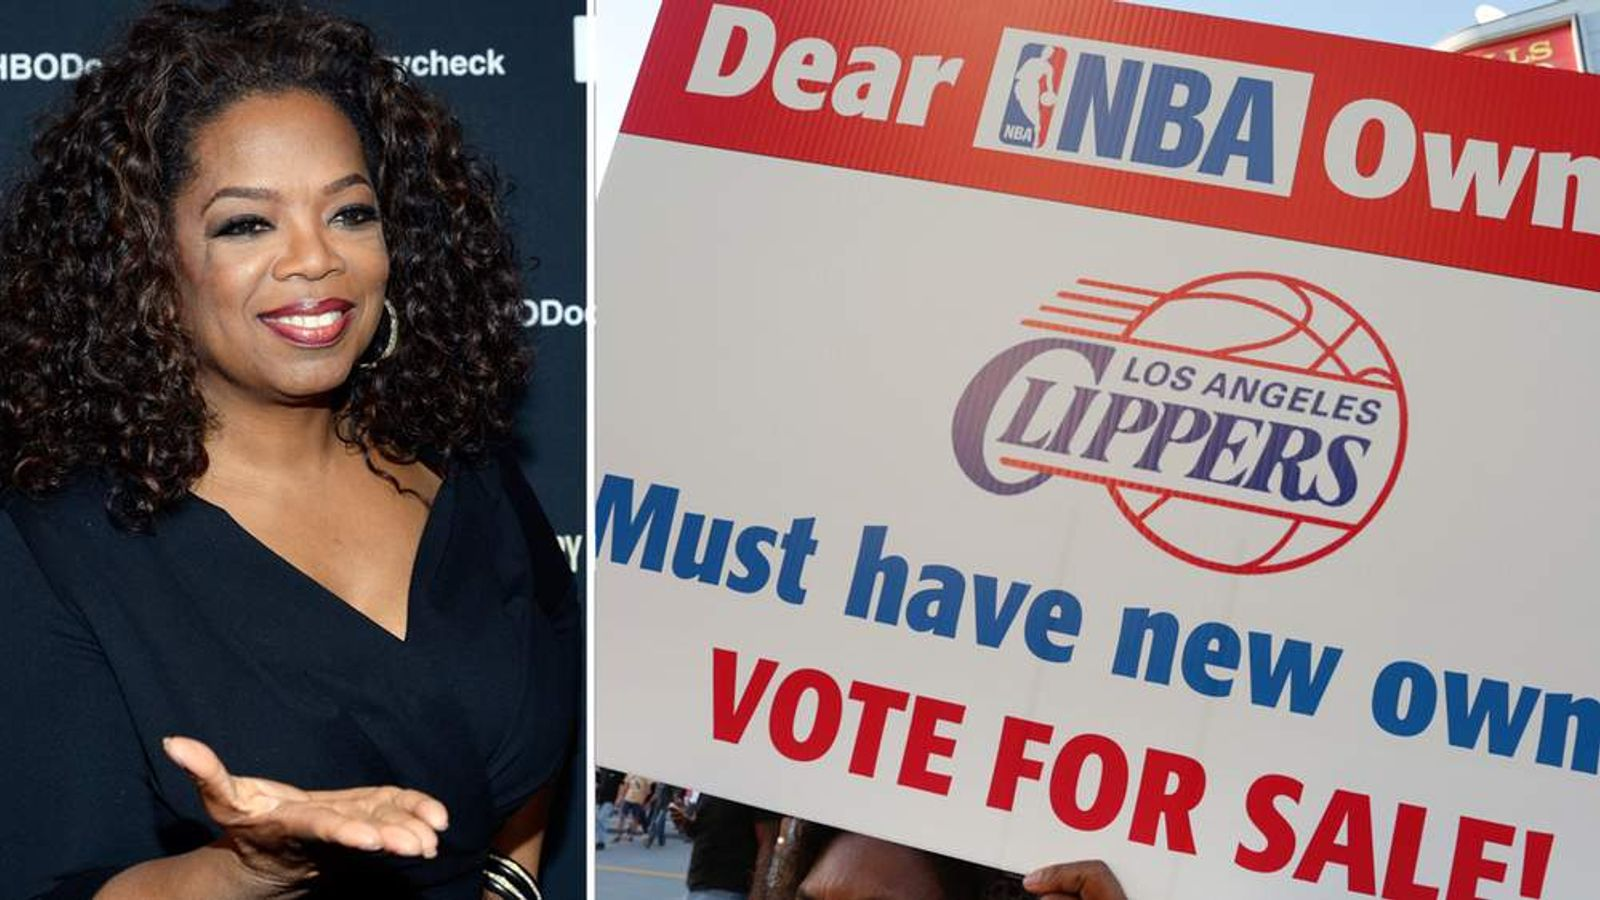 OPRAH CLIPPERS